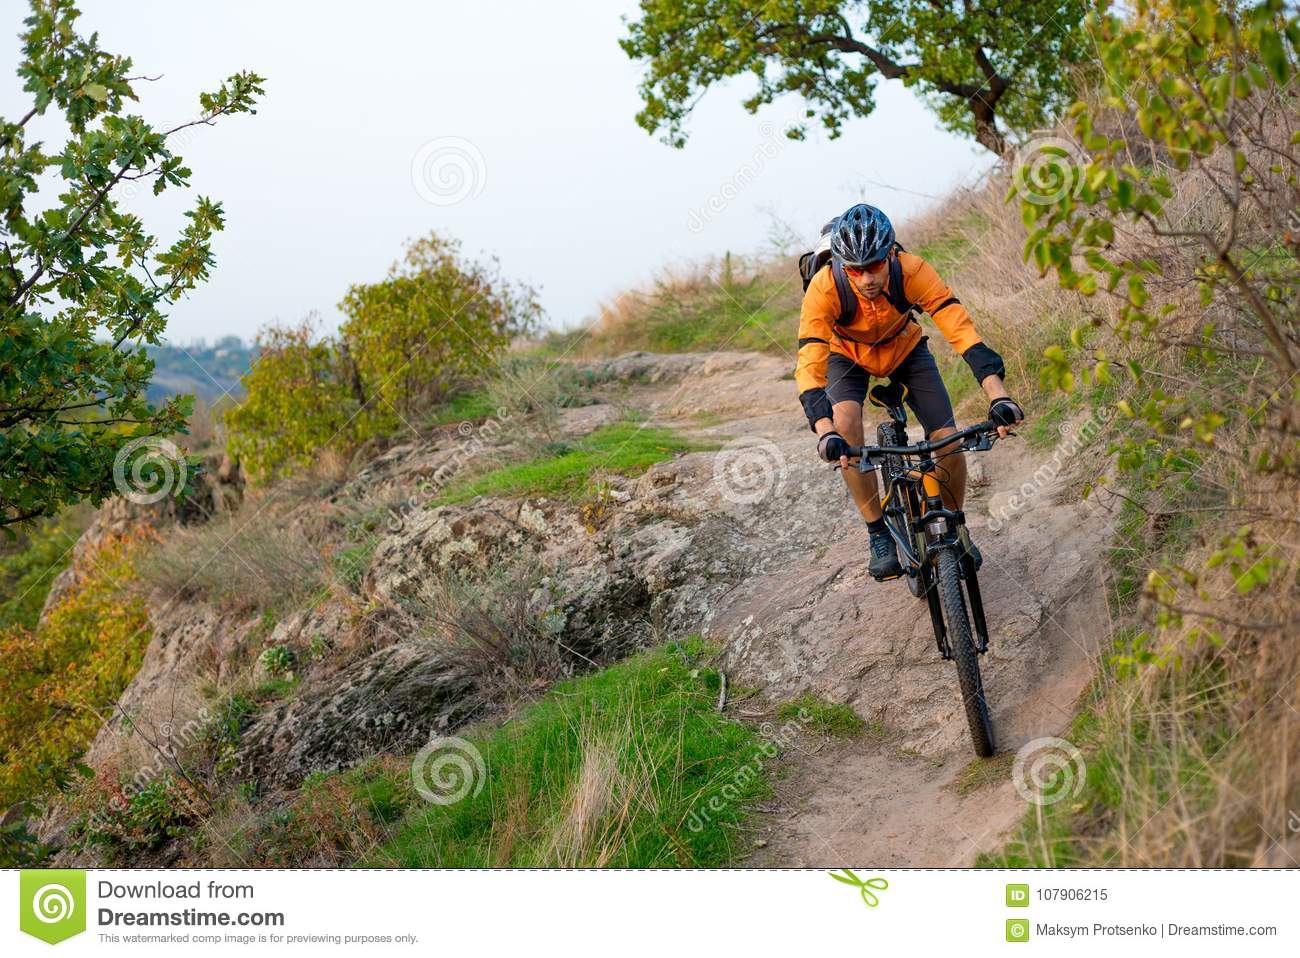 c47cf05a23f Cyclist in Orange Riding the Mountain Bike on the Autumn Rocky Enduro Trail.  Extreme Sport and Enduro Biking Concept.